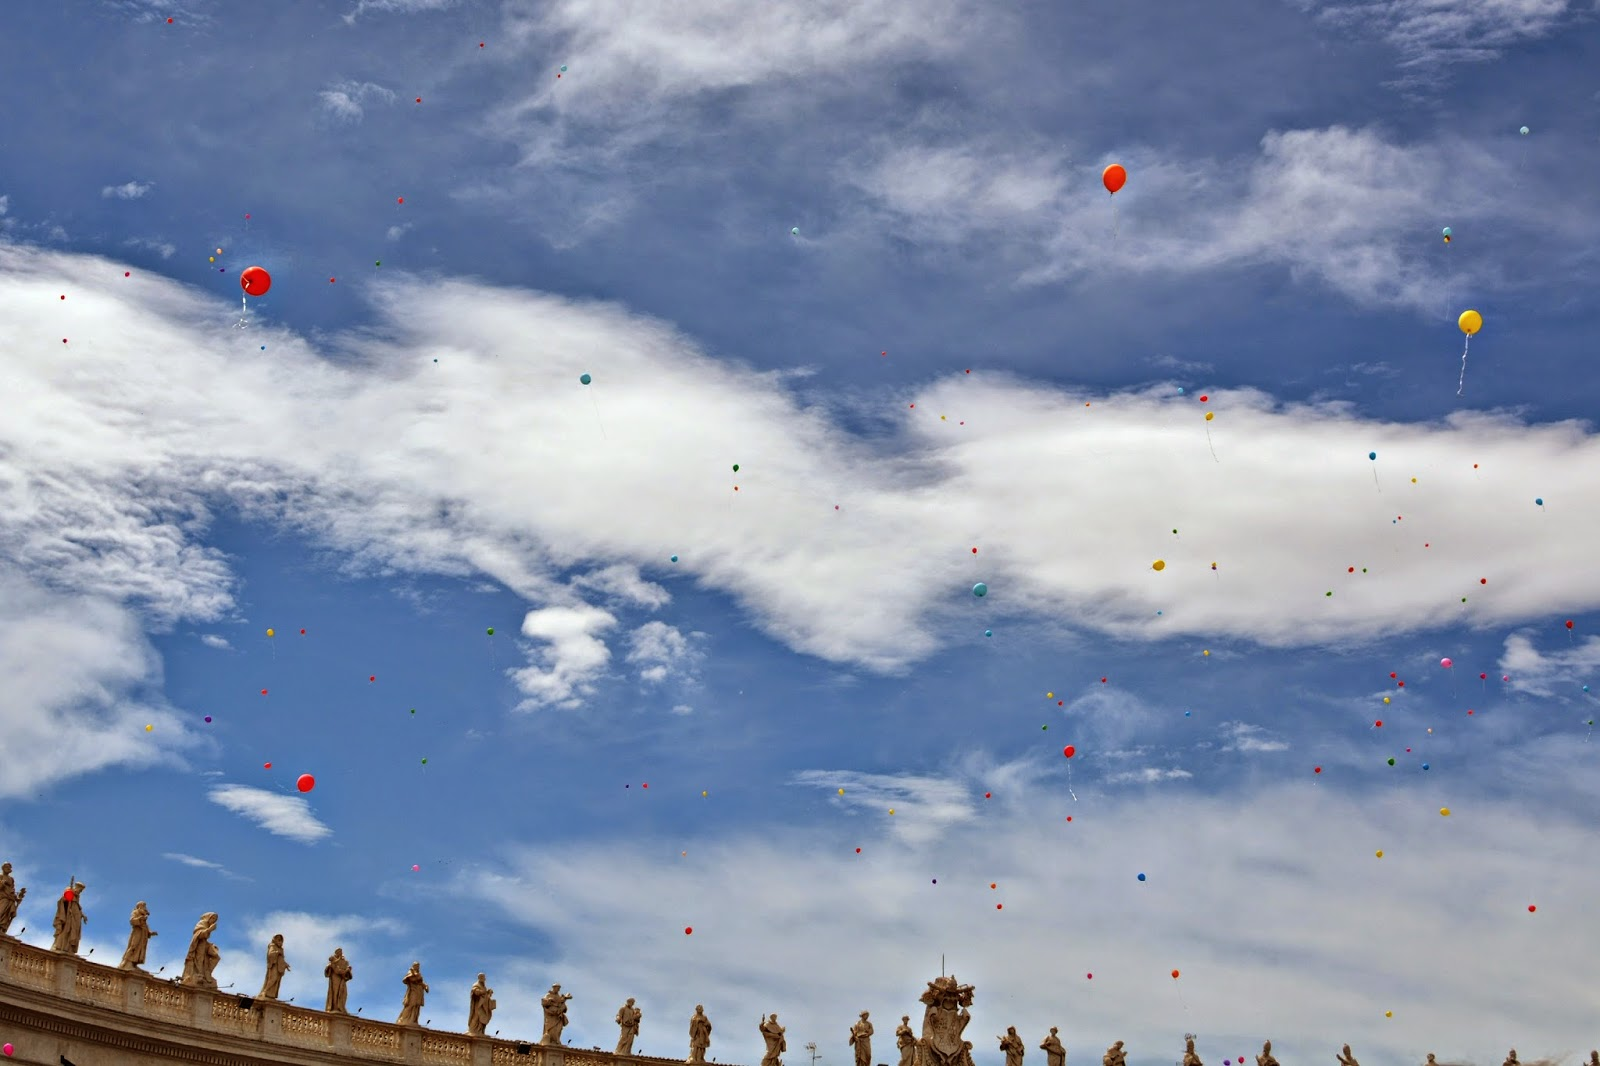 balloons at st peter's square vatican city